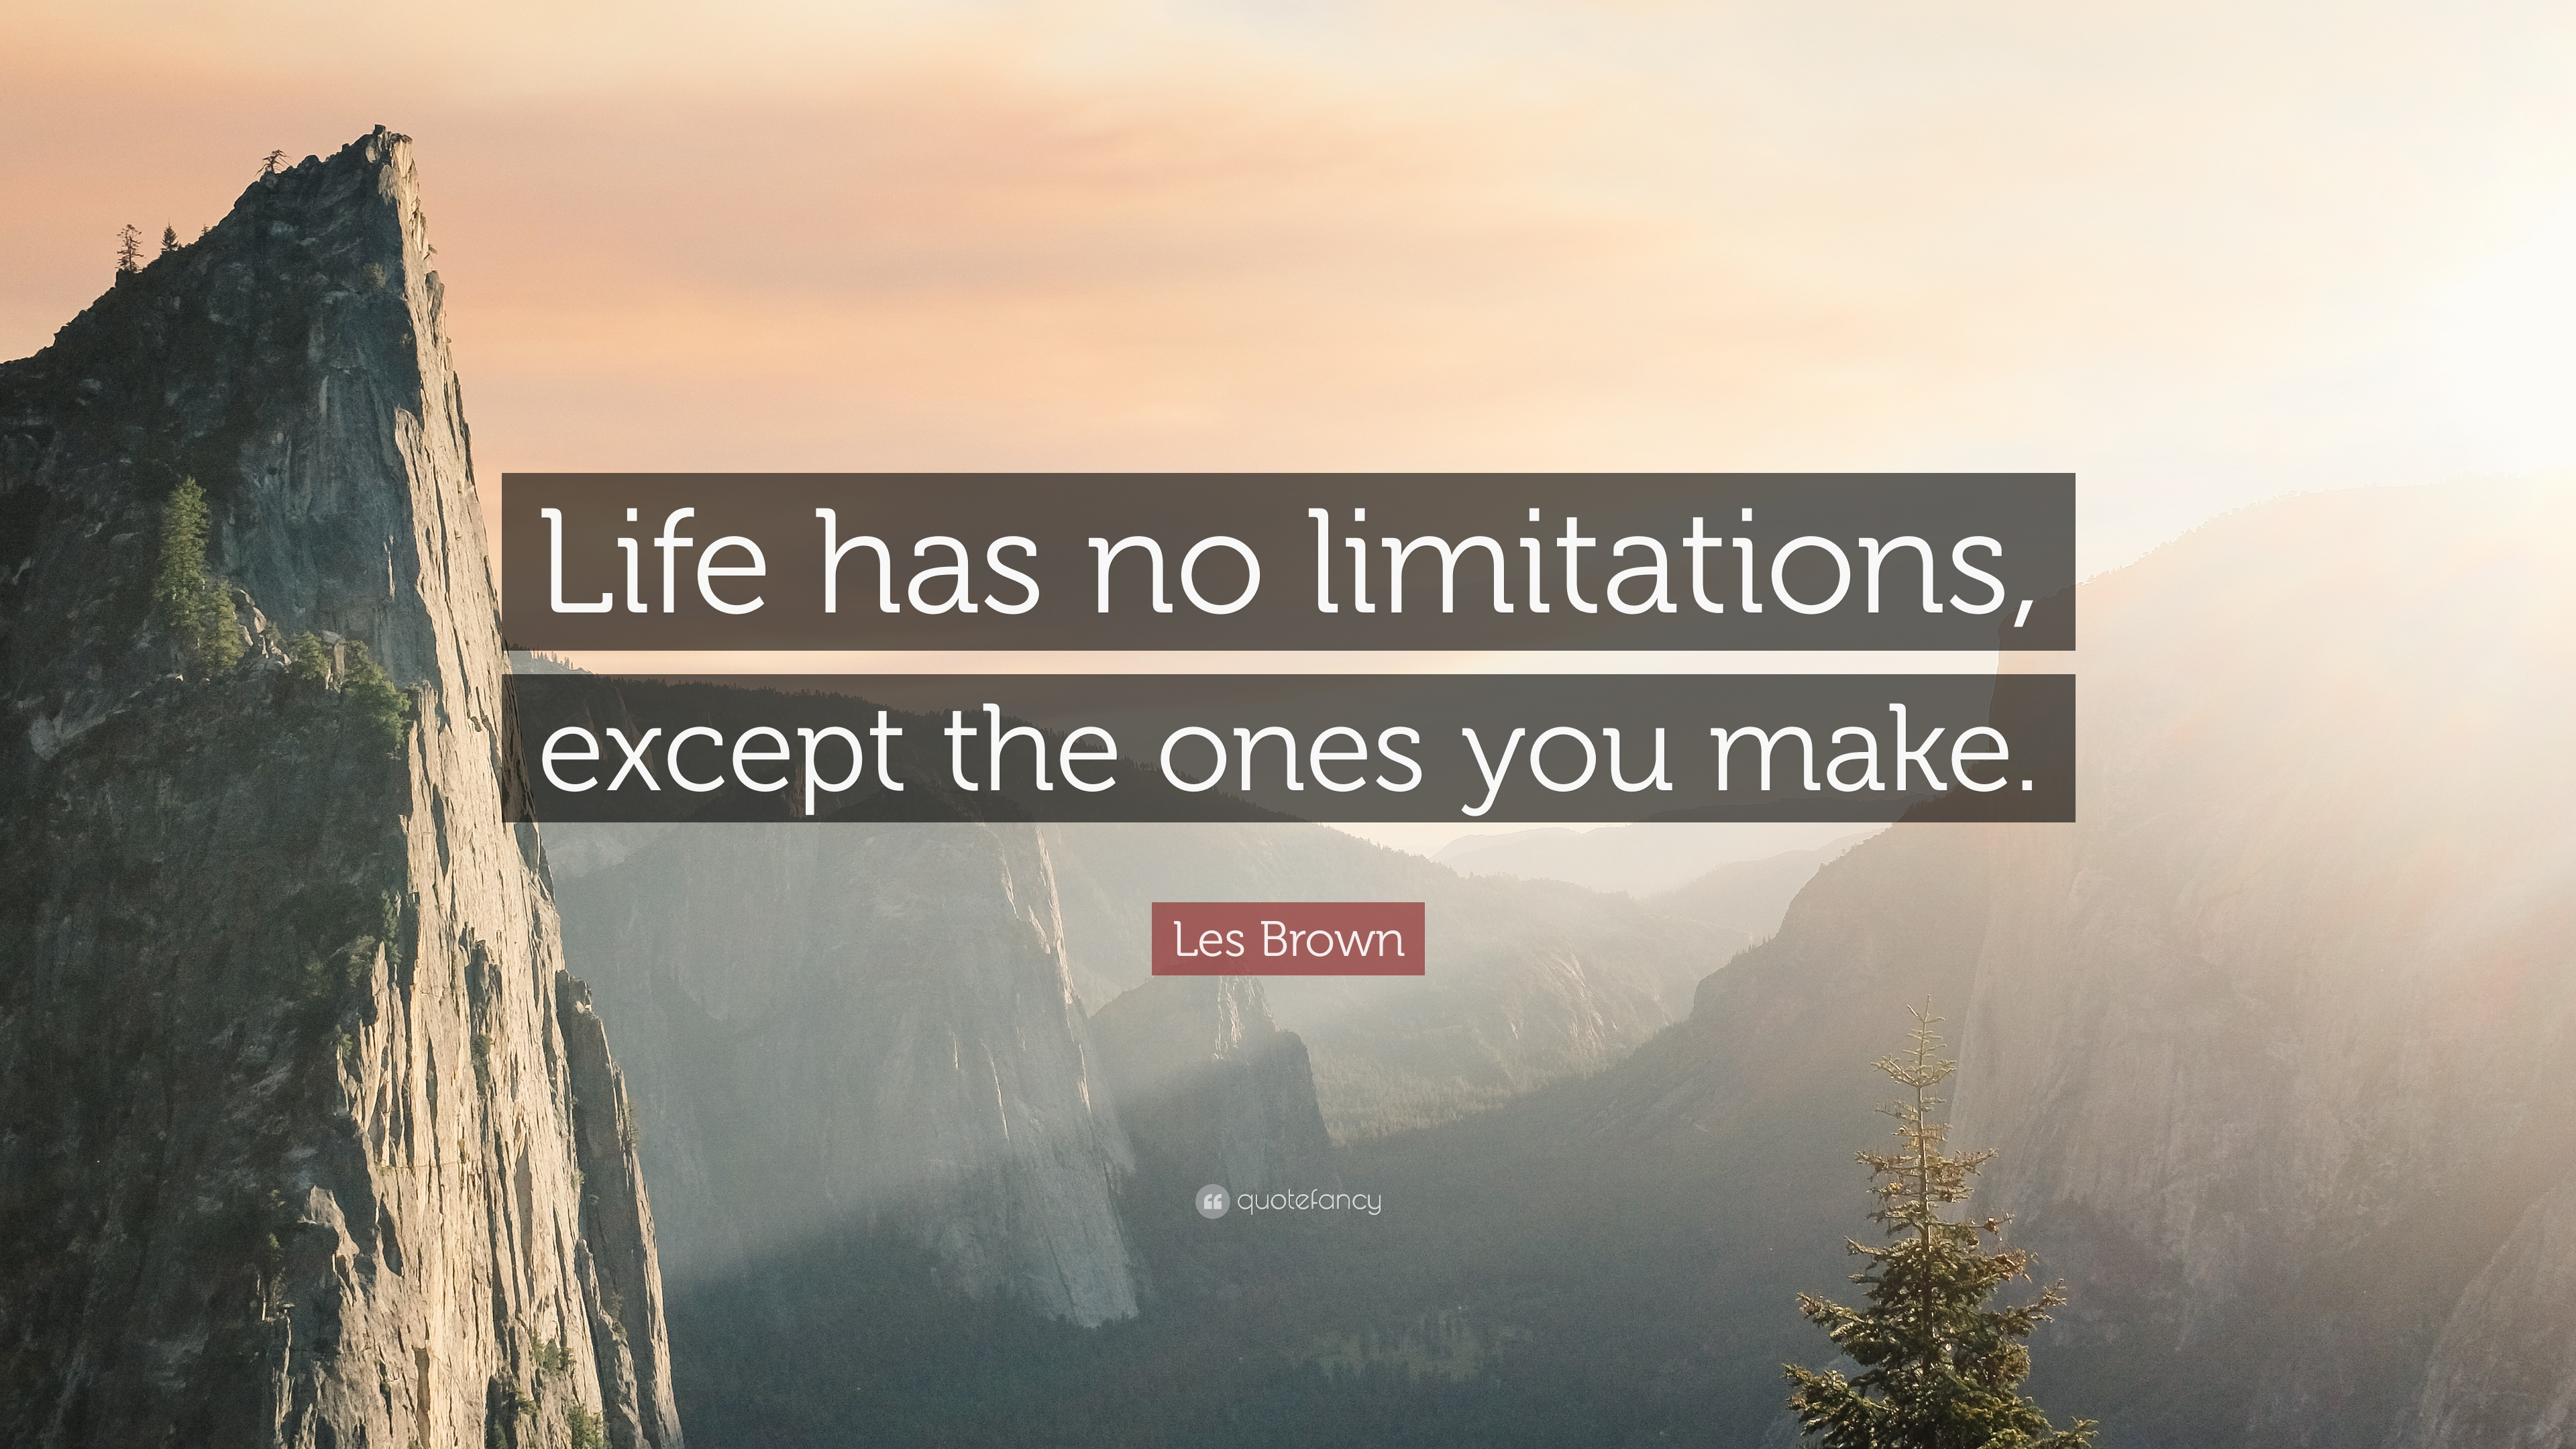 Les Brown Quotes Except Quote With Wallpaper  The Best Collection Of Quotes